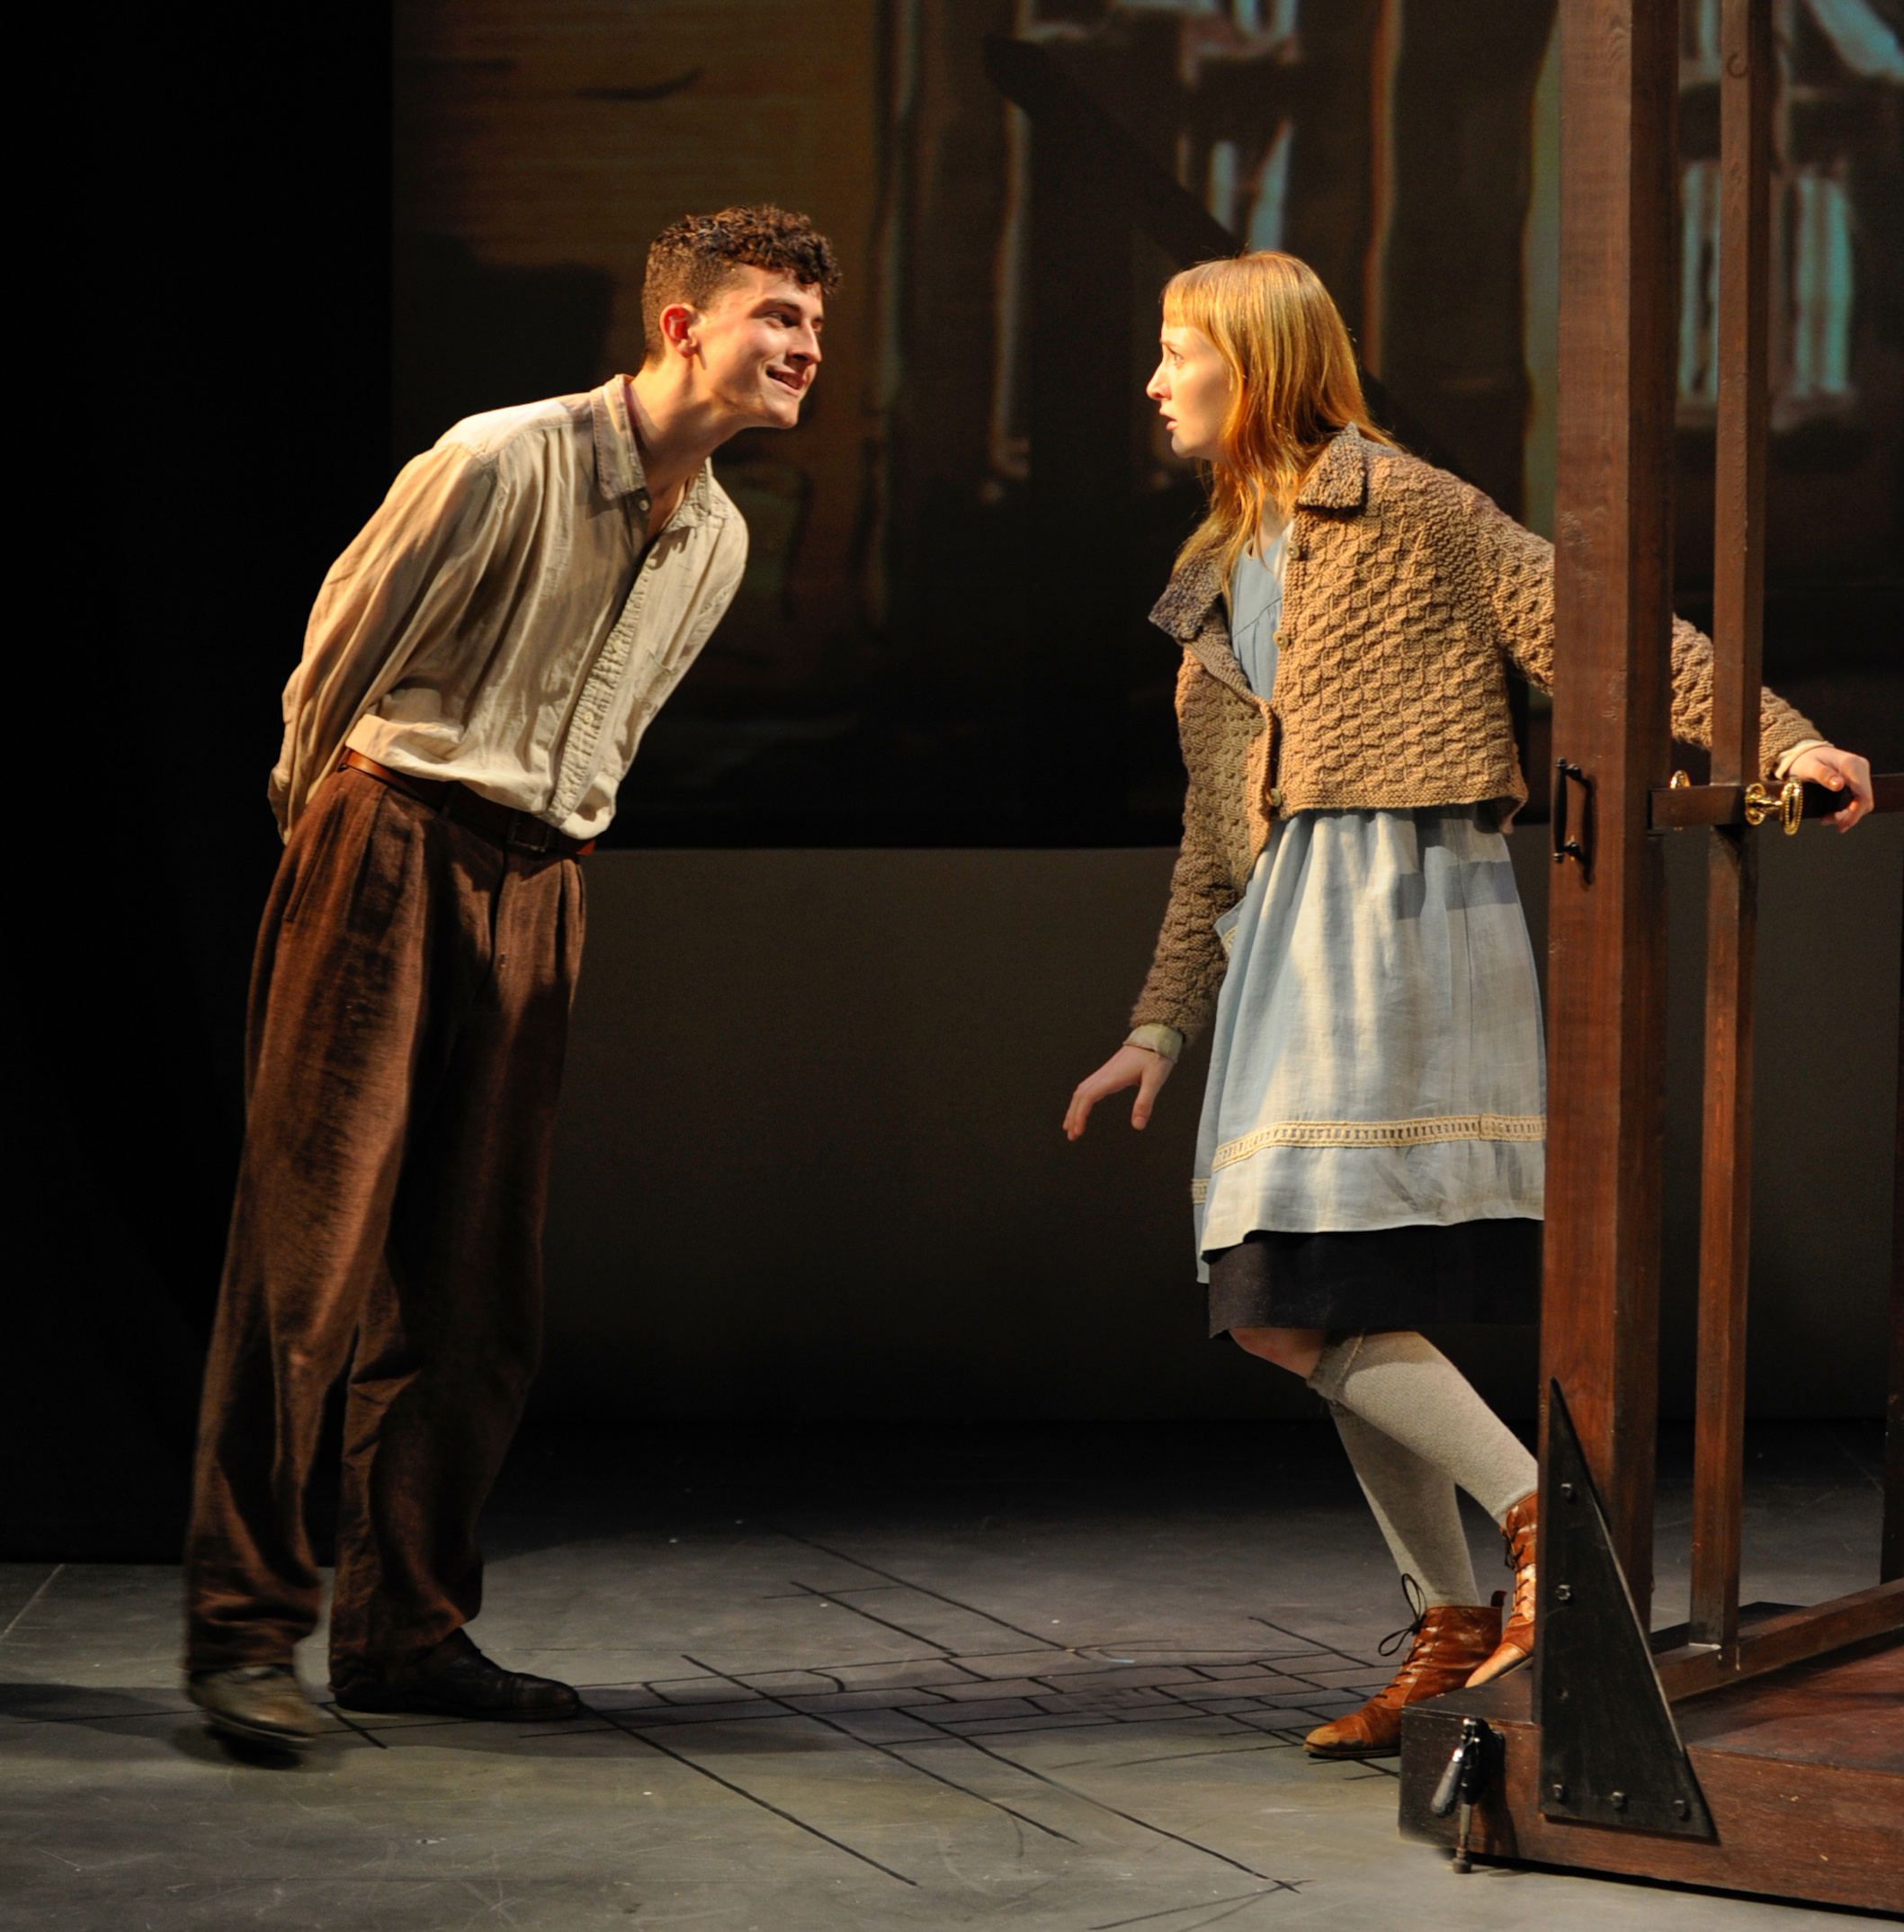 liesel in the book thief liesel the book thief by insomniac mind  chicago theater review the book thief steppenwolf tony frankel s stage and cinema review of the